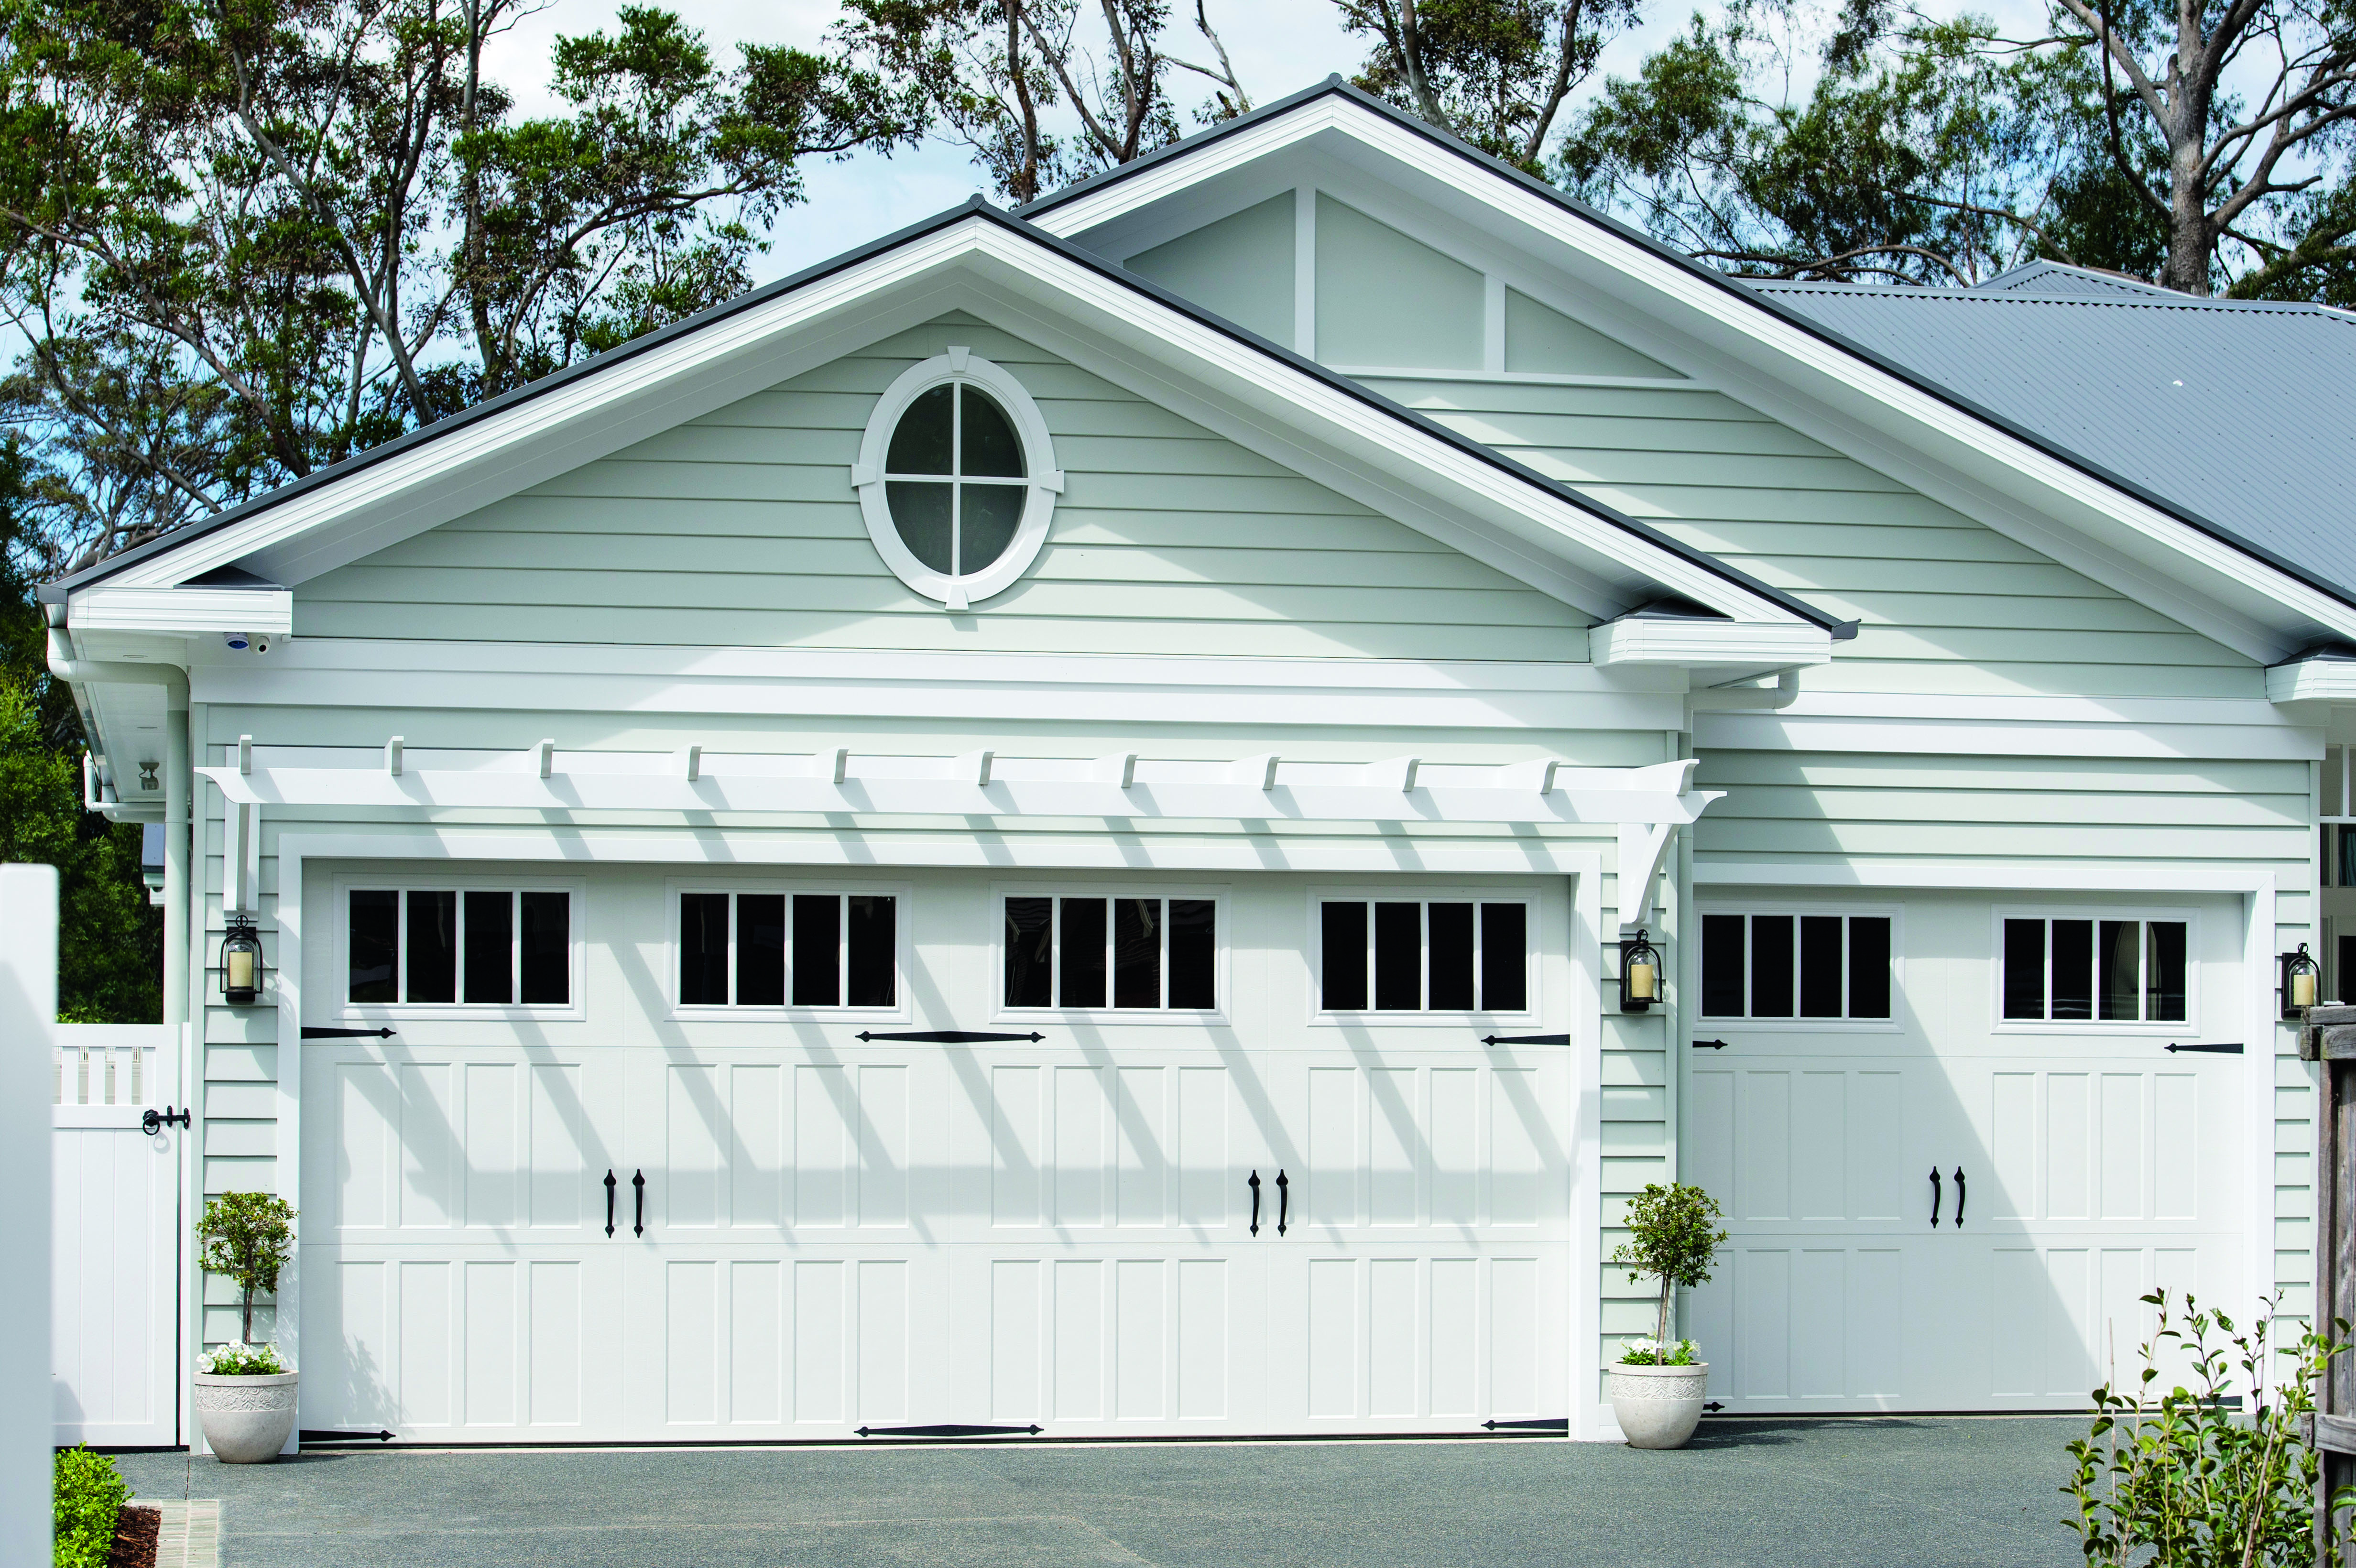 Classic design modern build an authentic hamptons haven for Modern classic building design